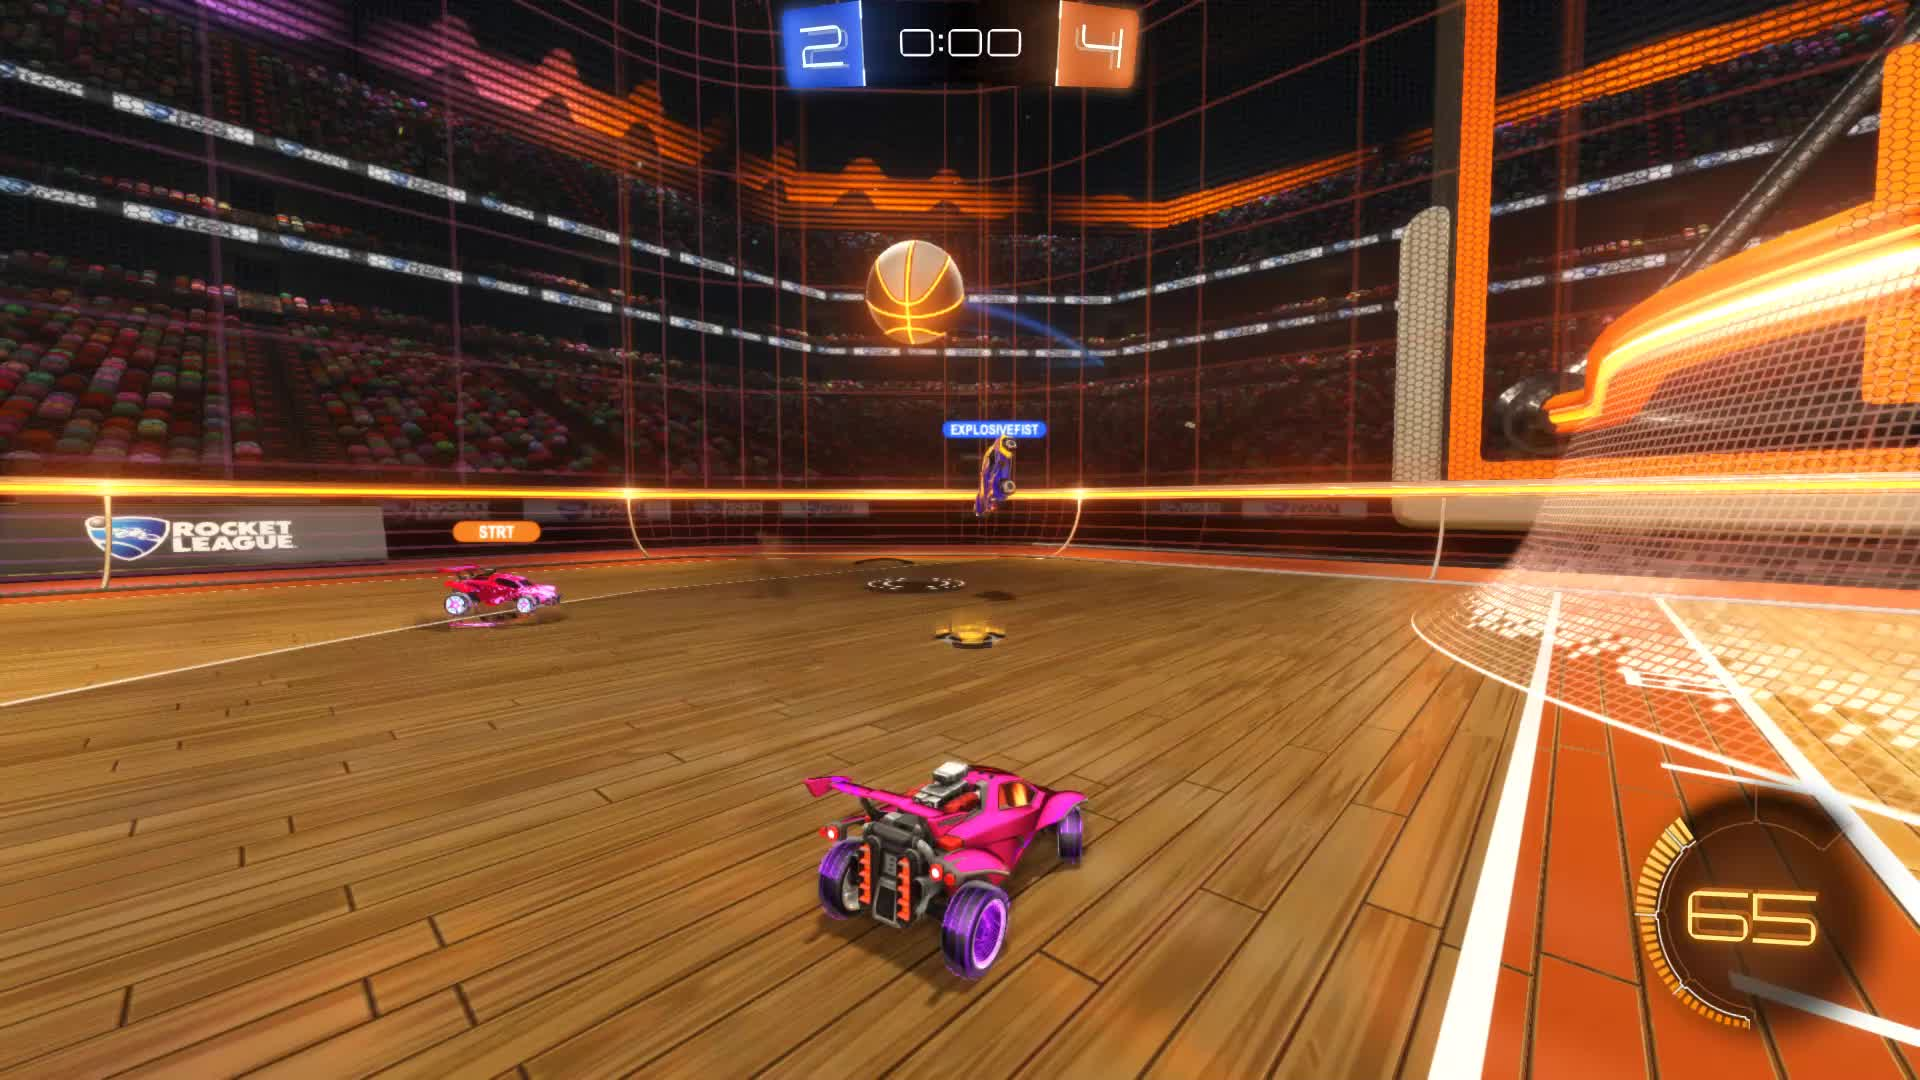 Gif Your Game, GifYourGame, Goal, JAG, Rocket League, RocketLeague, Goal 7: JAG GIFs